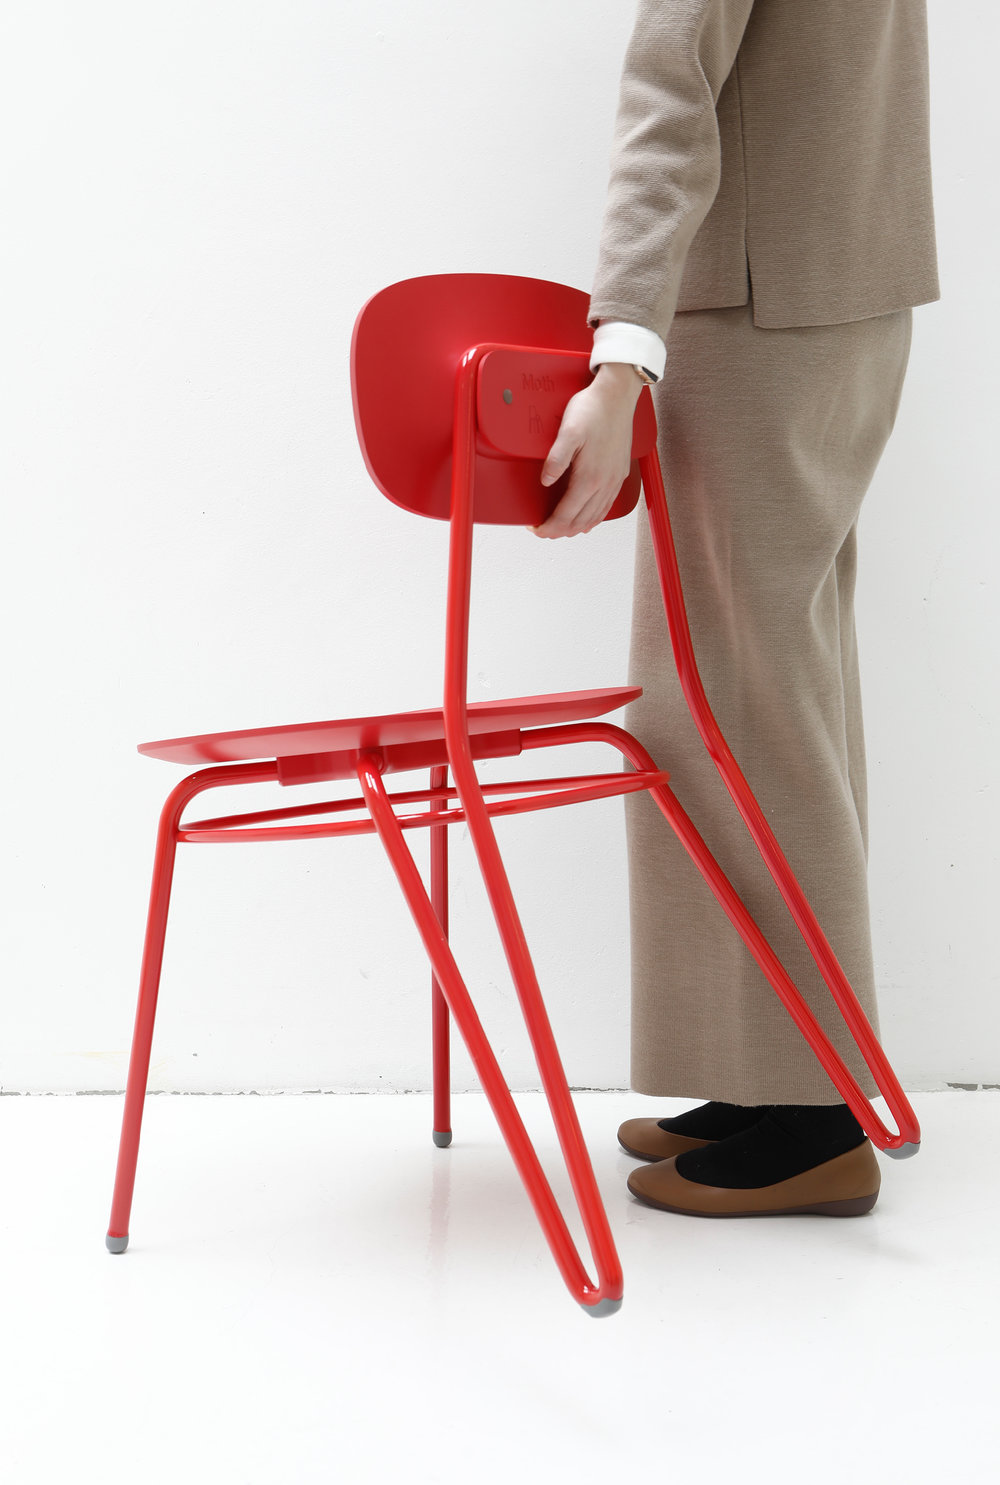 Moth Chair designed by BKID